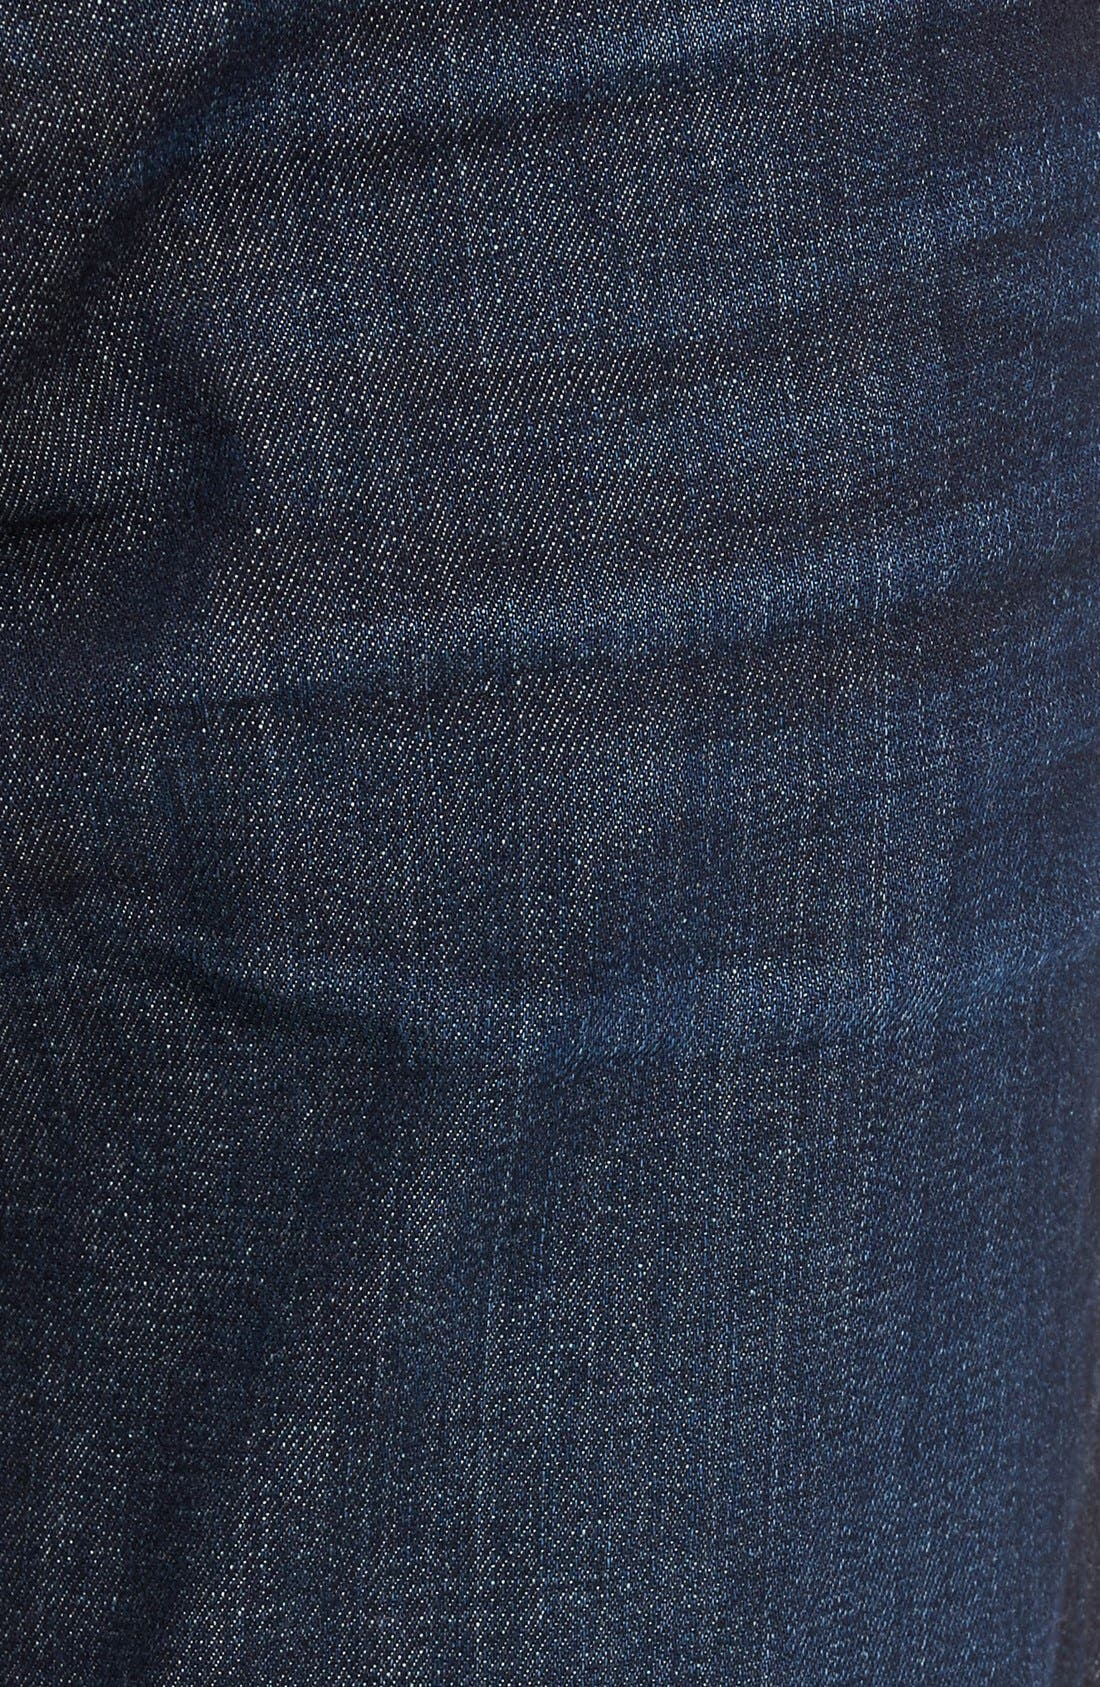 Classic Straight Fit Jeans,                             Alternate thumbnail 10, color,                             TIMOTHY